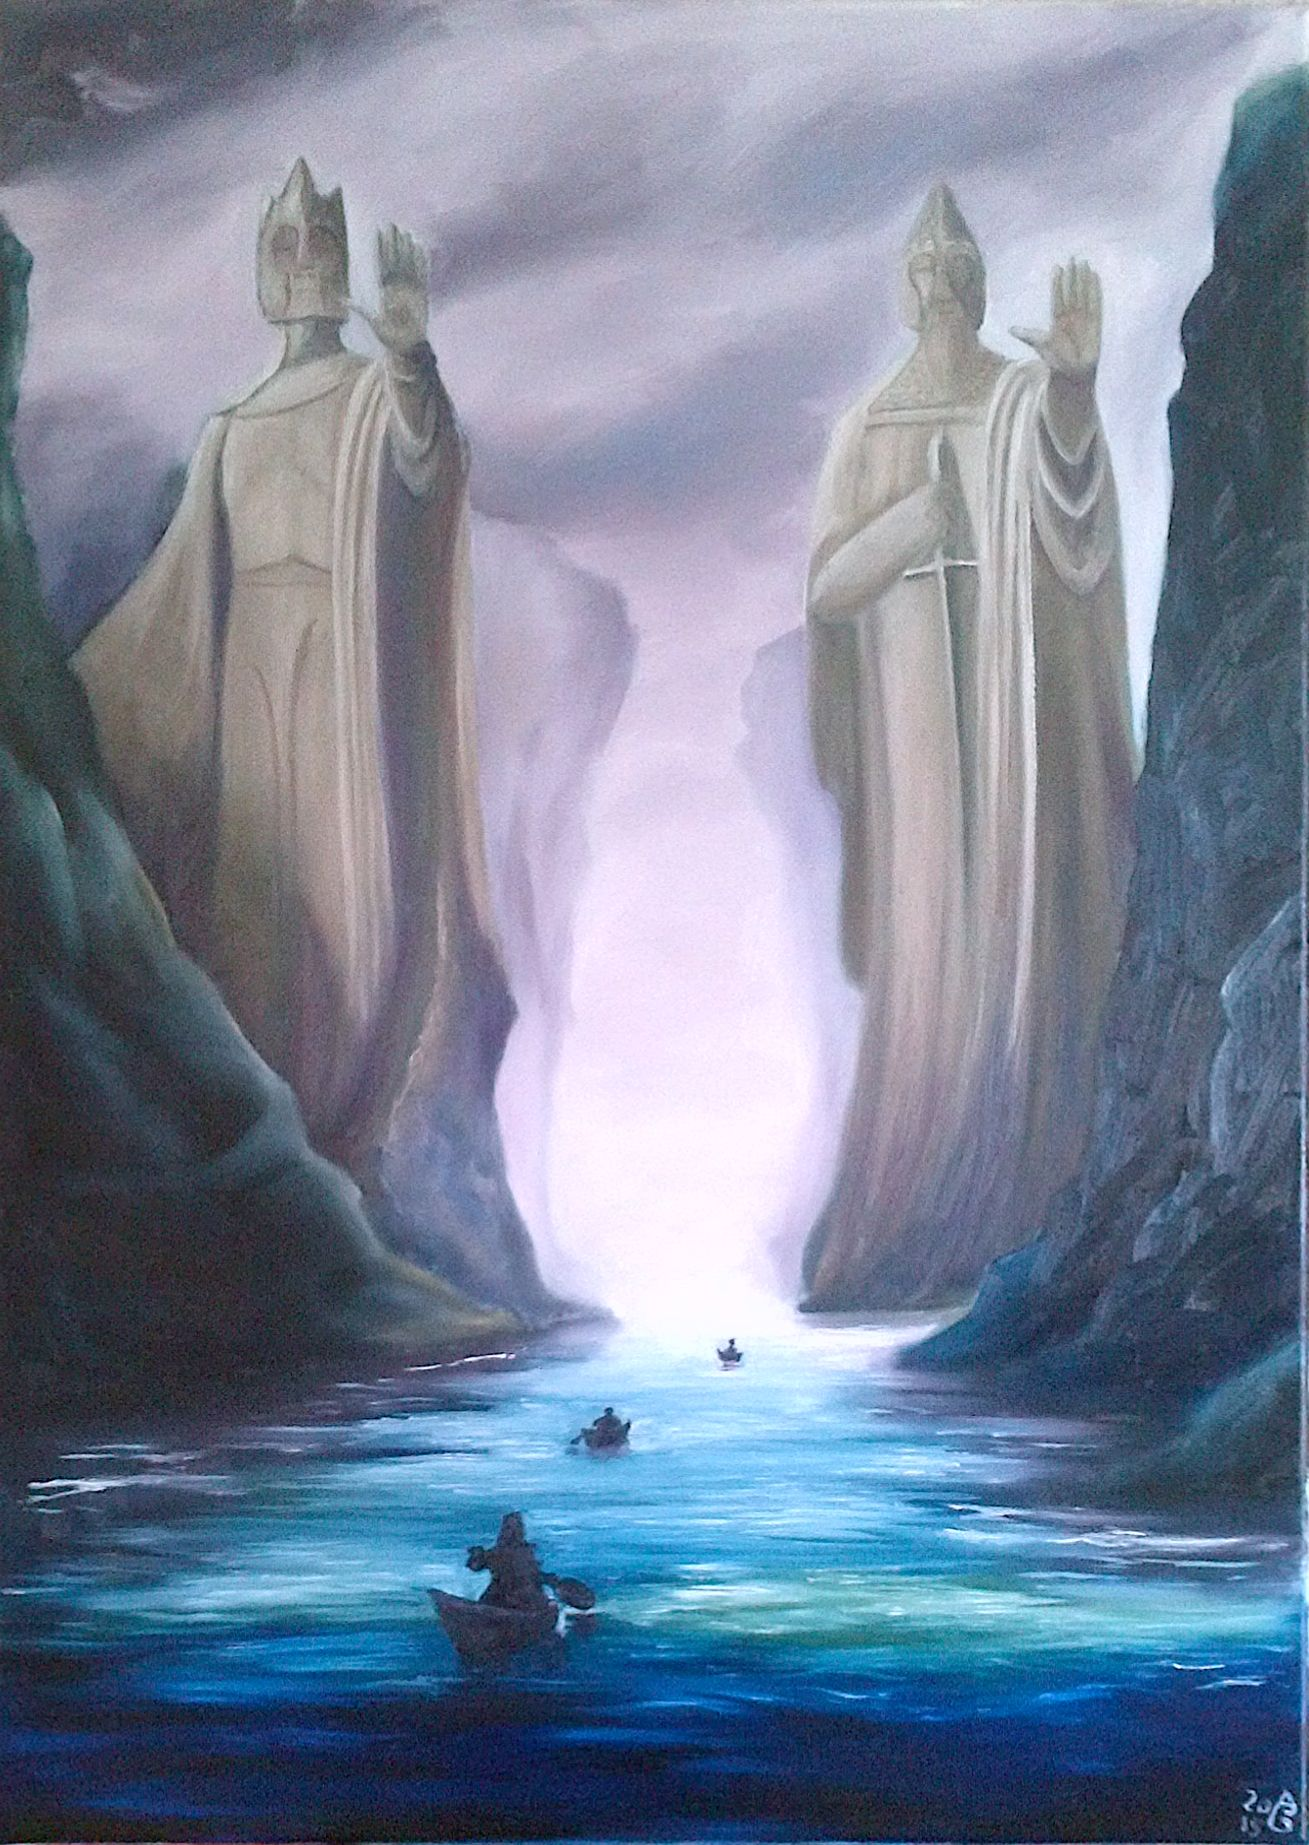 The Argonath. Öl auf Leinwand, 70 x 50 cm. The Argonath. Oils on canvas, 27.5'' x 19.7''.